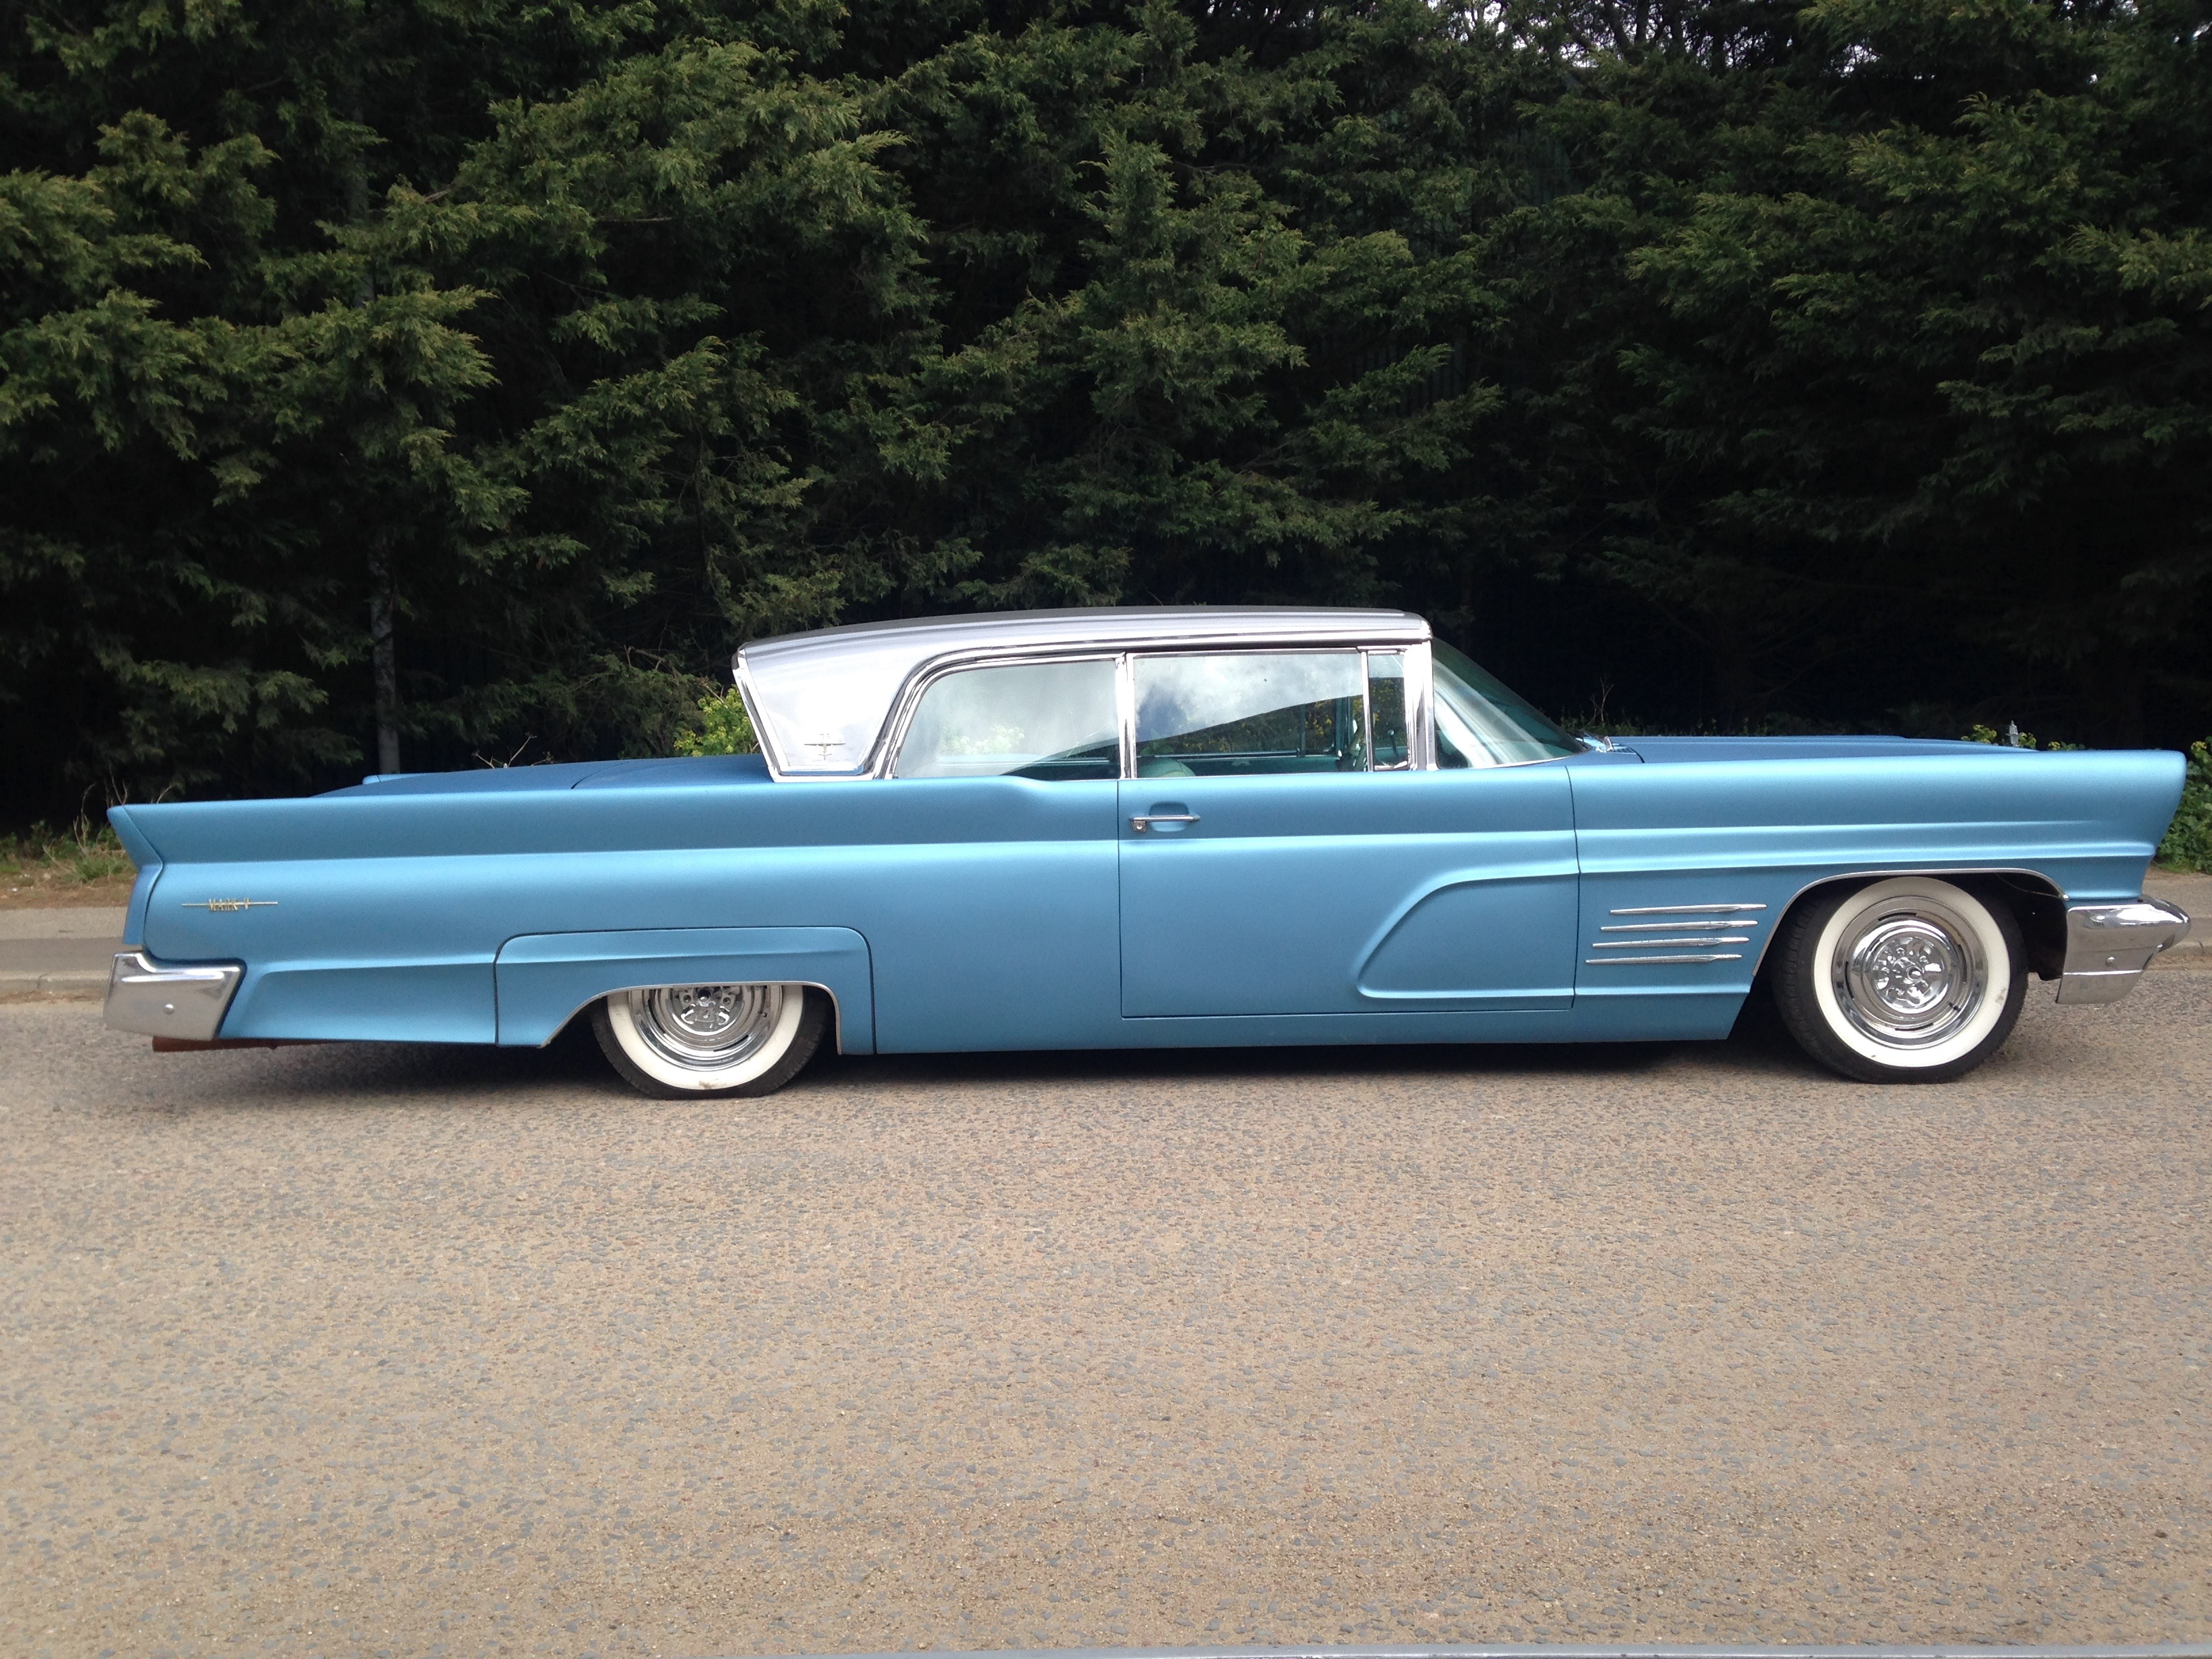 1960 Lincoln Continental Auto Flat Paint With Gloss Silver